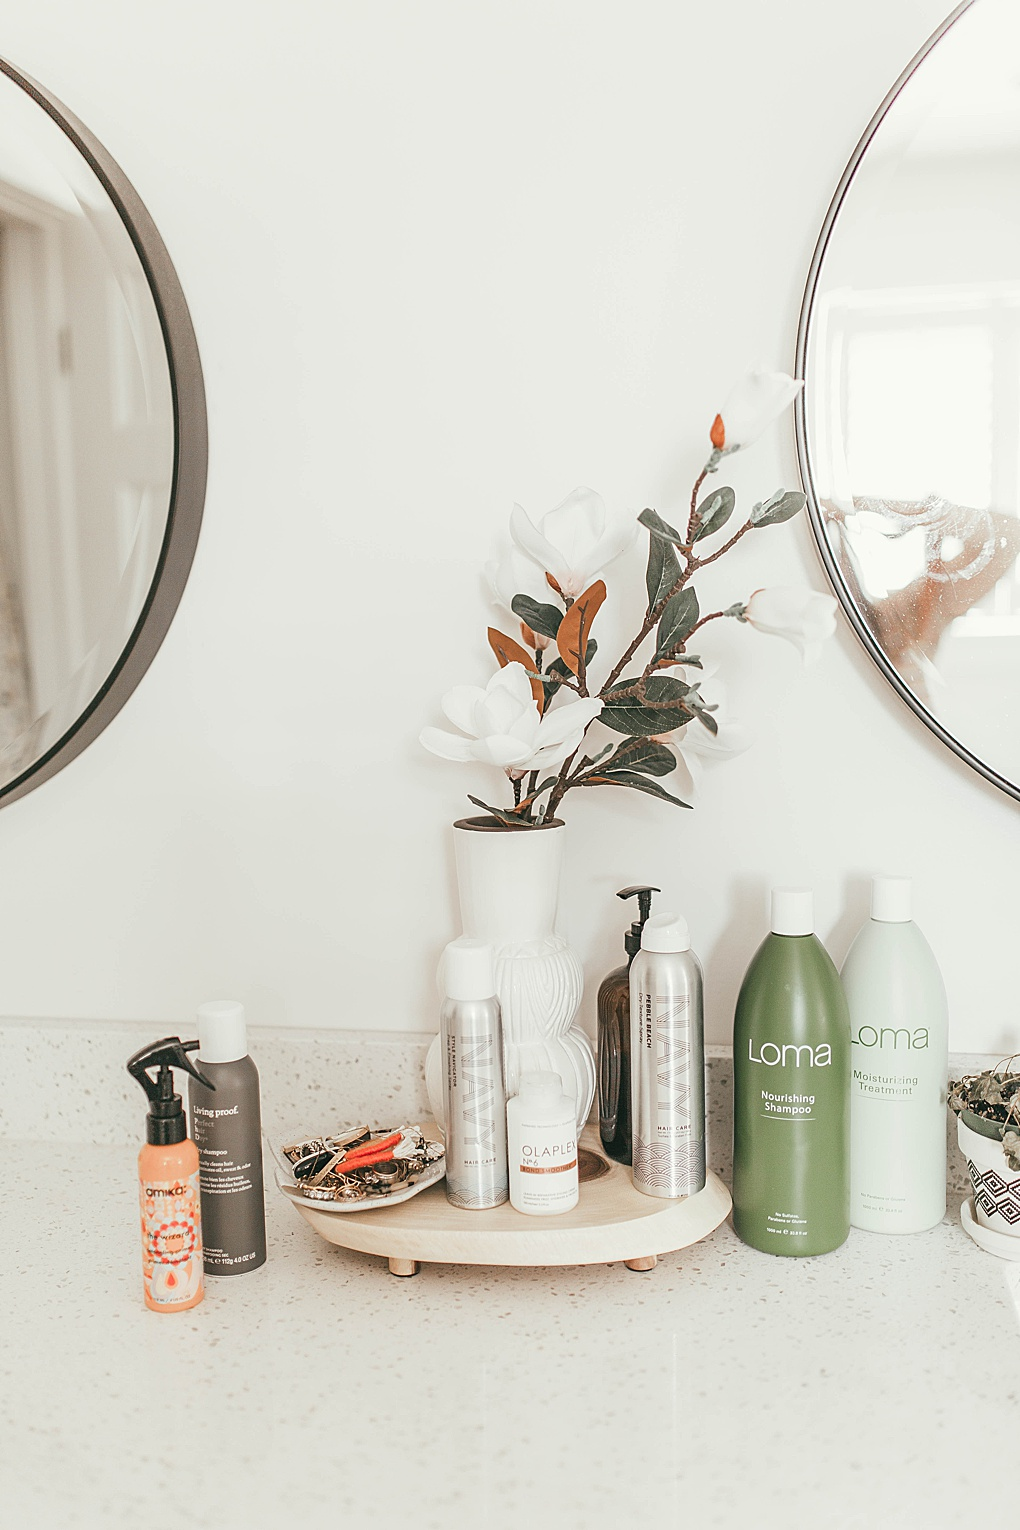 Looking for a few new hair products? Utah Style blogger Dani Marie is sharing her top tried & true hair products. See them HERE!